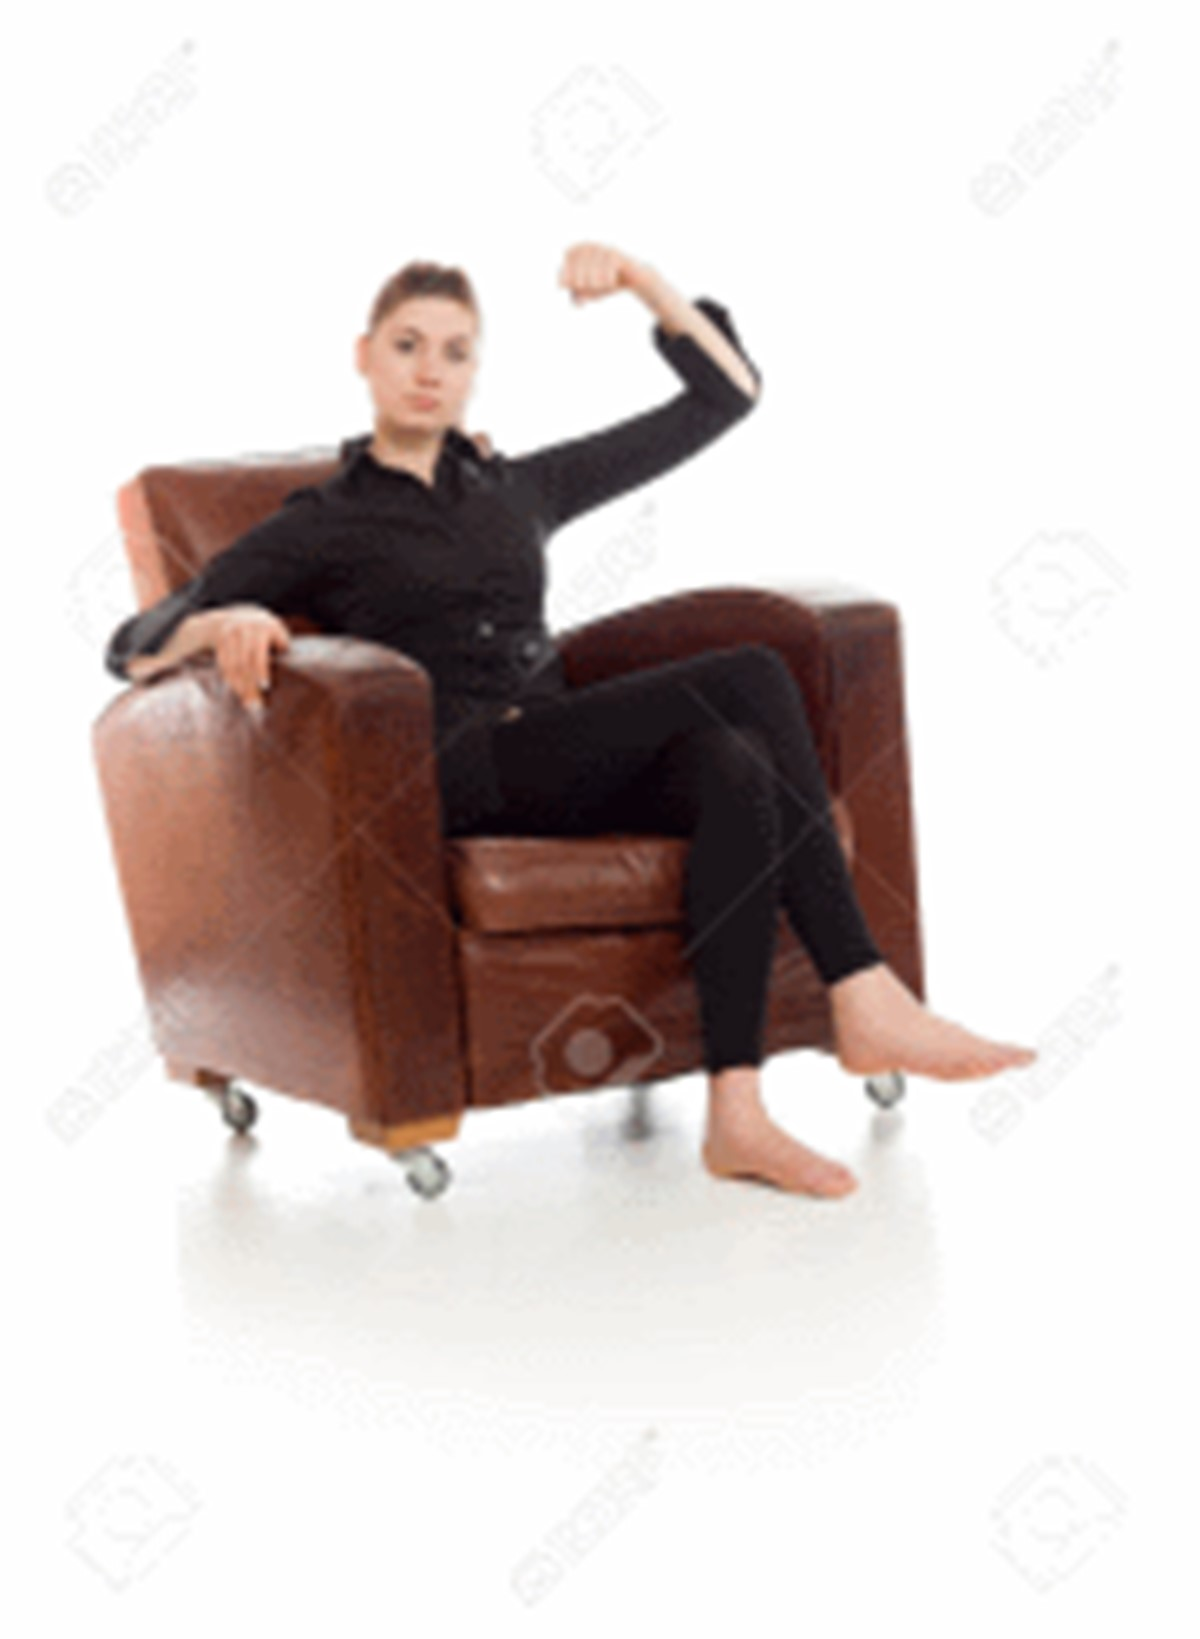 armchair exercise.png